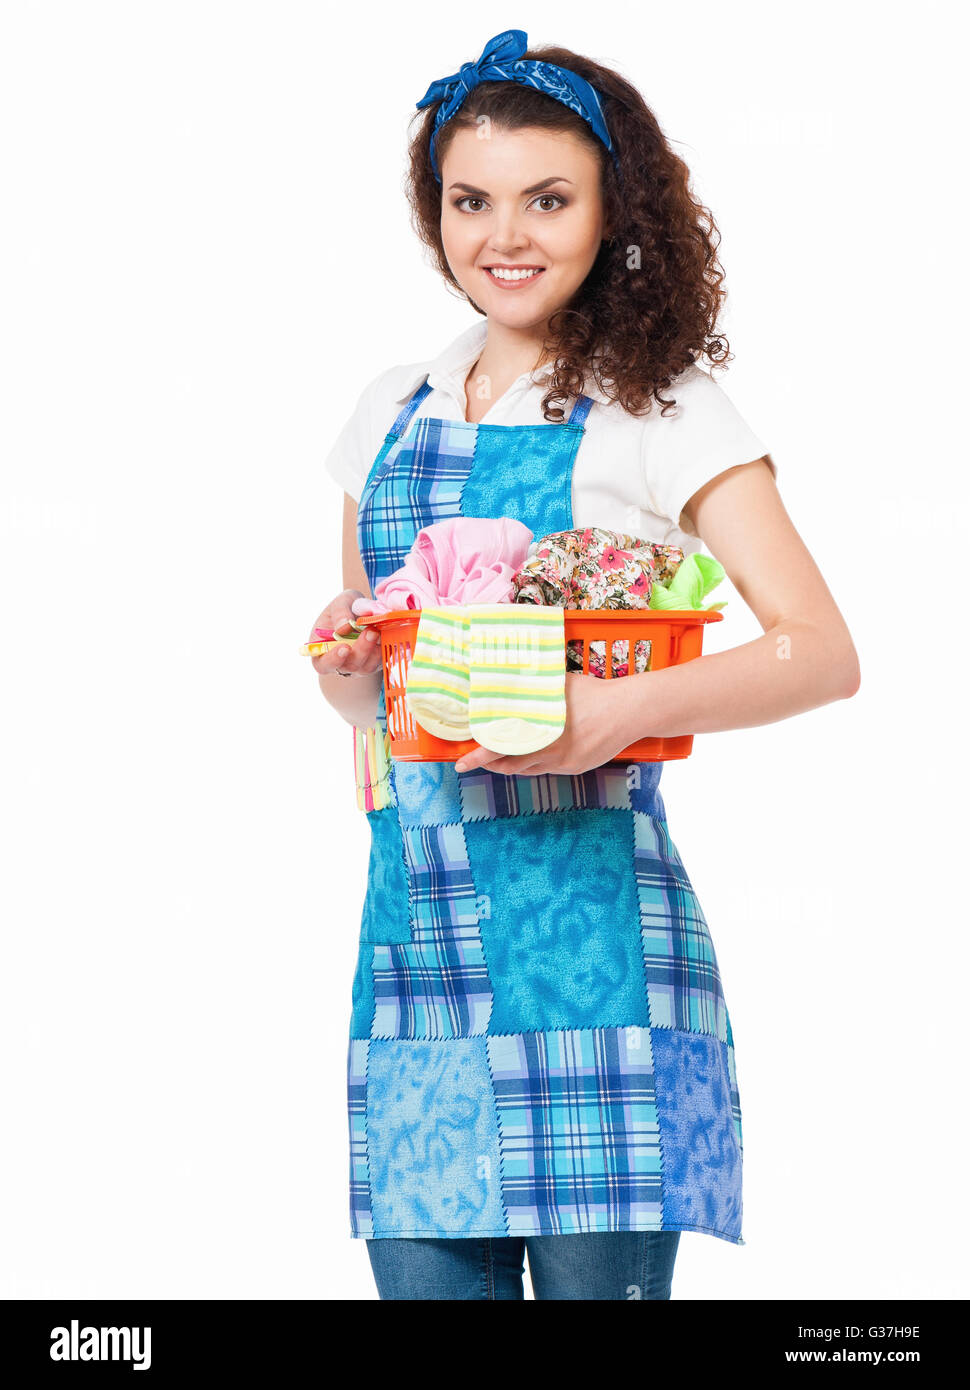 Housewife with laundry basket - Stock Image